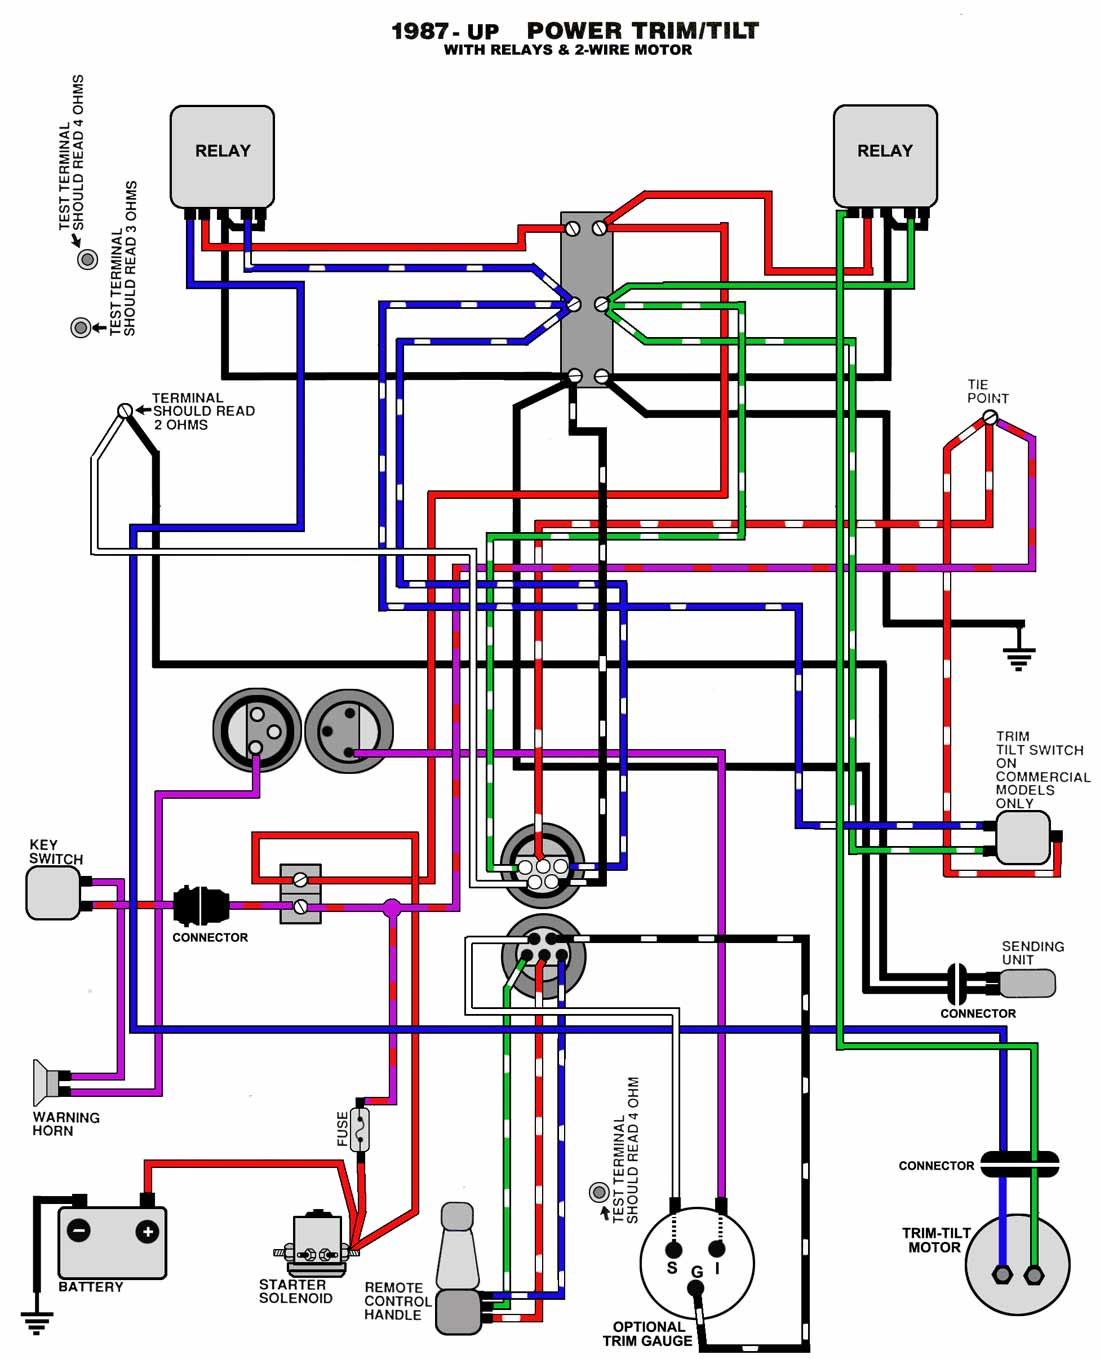 TnT_87_UP?resize=665%2C822 yamaha outboard motor wiring diagrams the wiring diagram yamaha outboard digital gauges wiring diagram at aneh.co